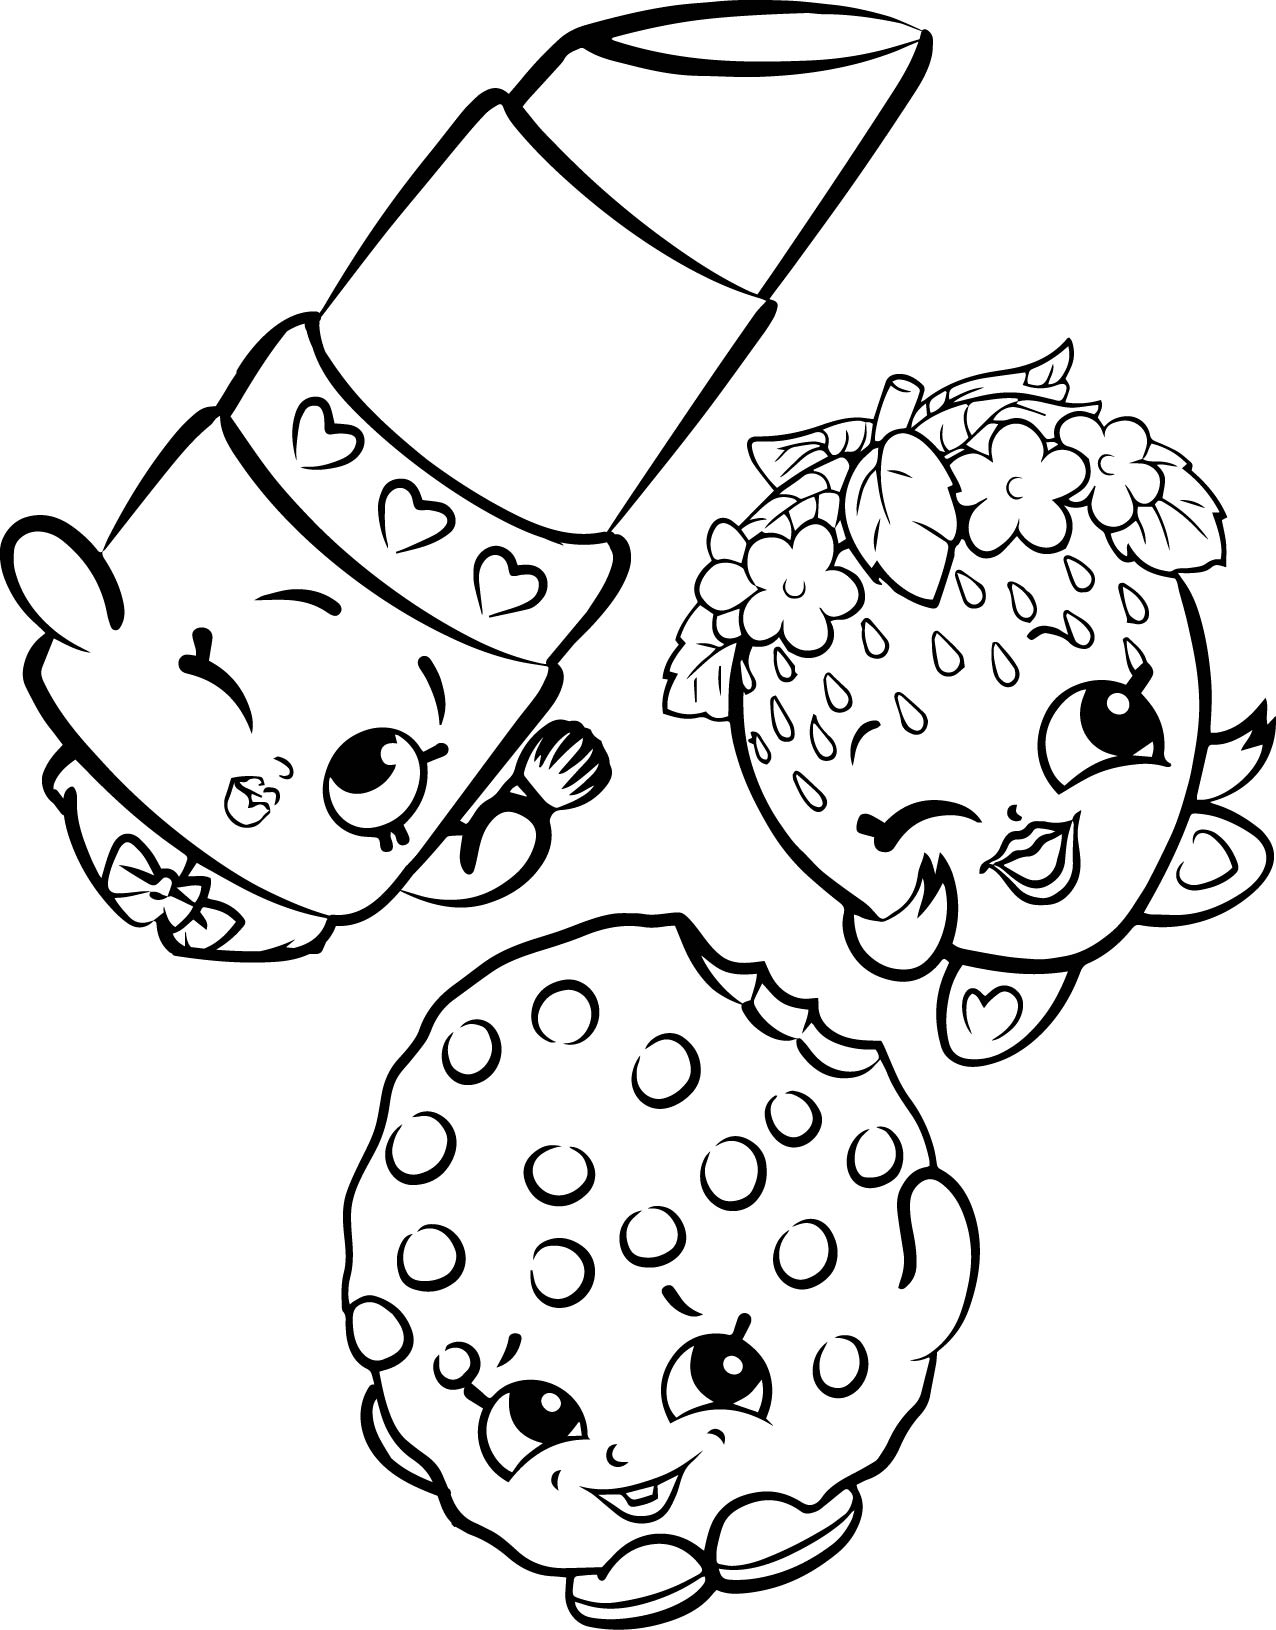 1276x1630 Shopkins Group Coloring Pages Free